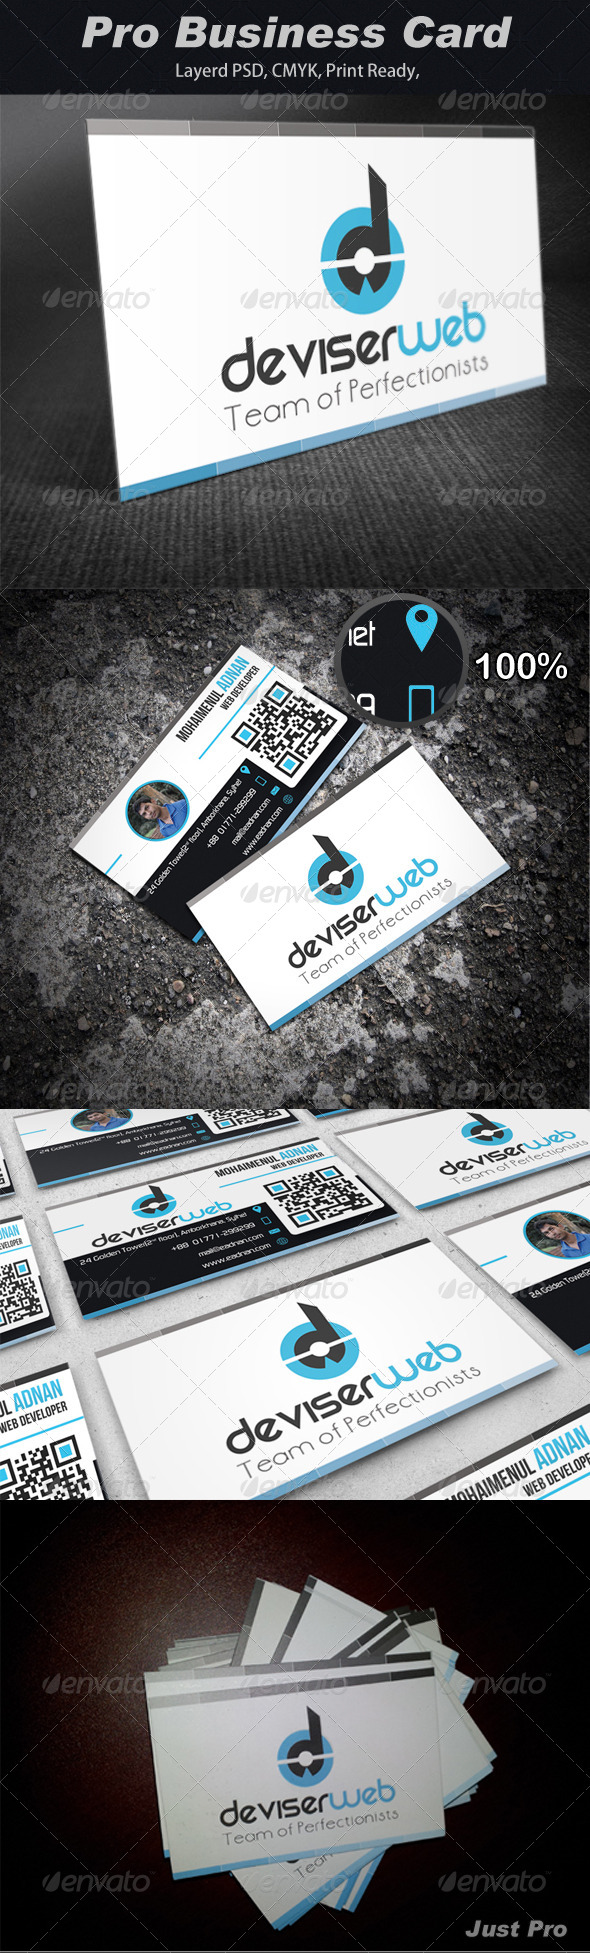 GraphicRiver Pro Business Card 4063953